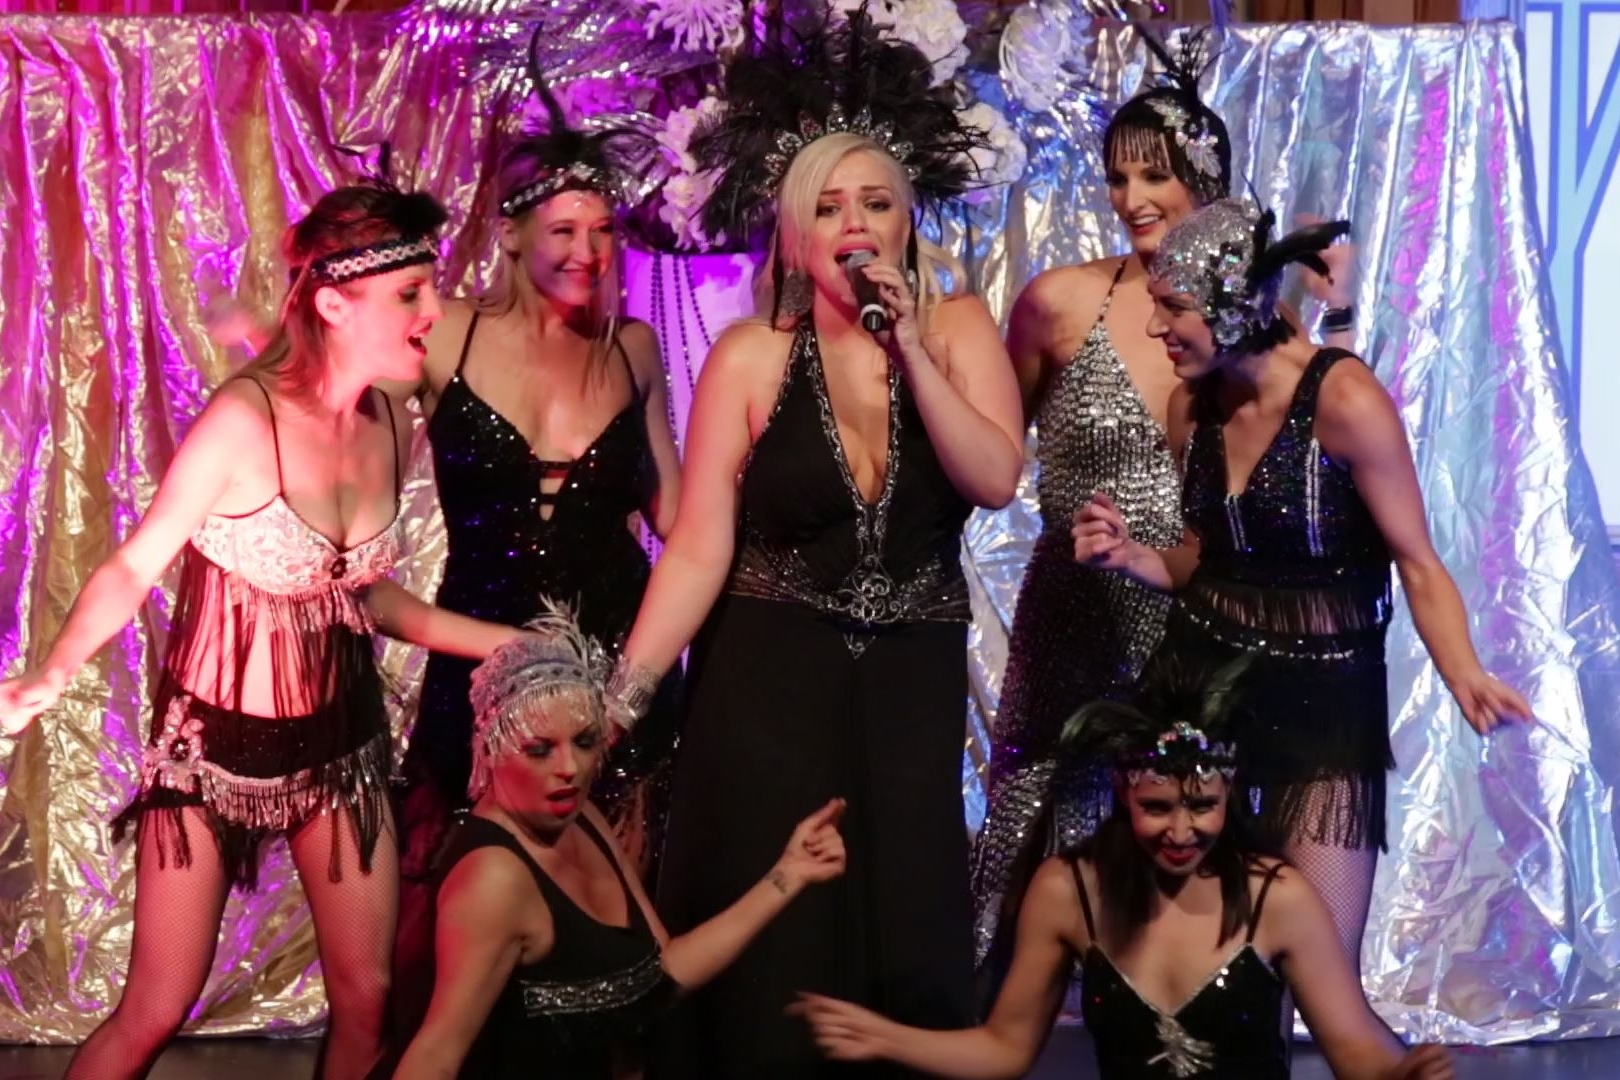 MAYFLOWER CLUB - A sizzling floorshow with Gatsby styling set during the time of prohibition.